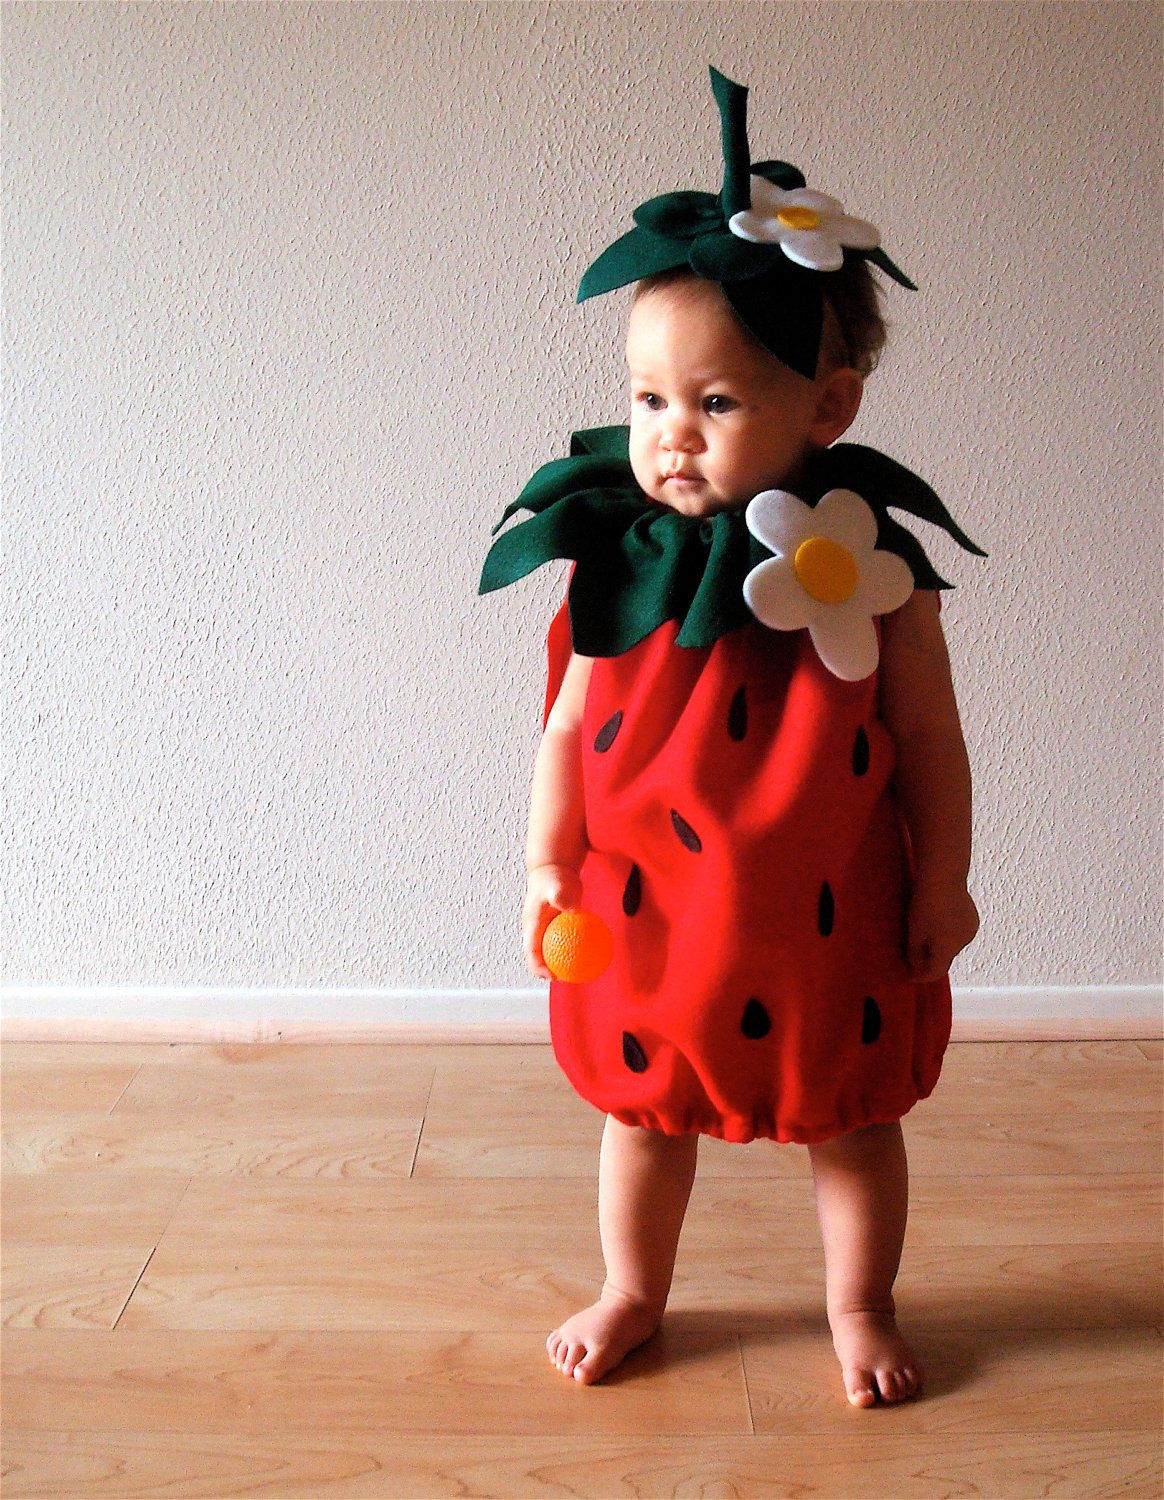 Cute! I see a costume for this year's Strawberry Fest!